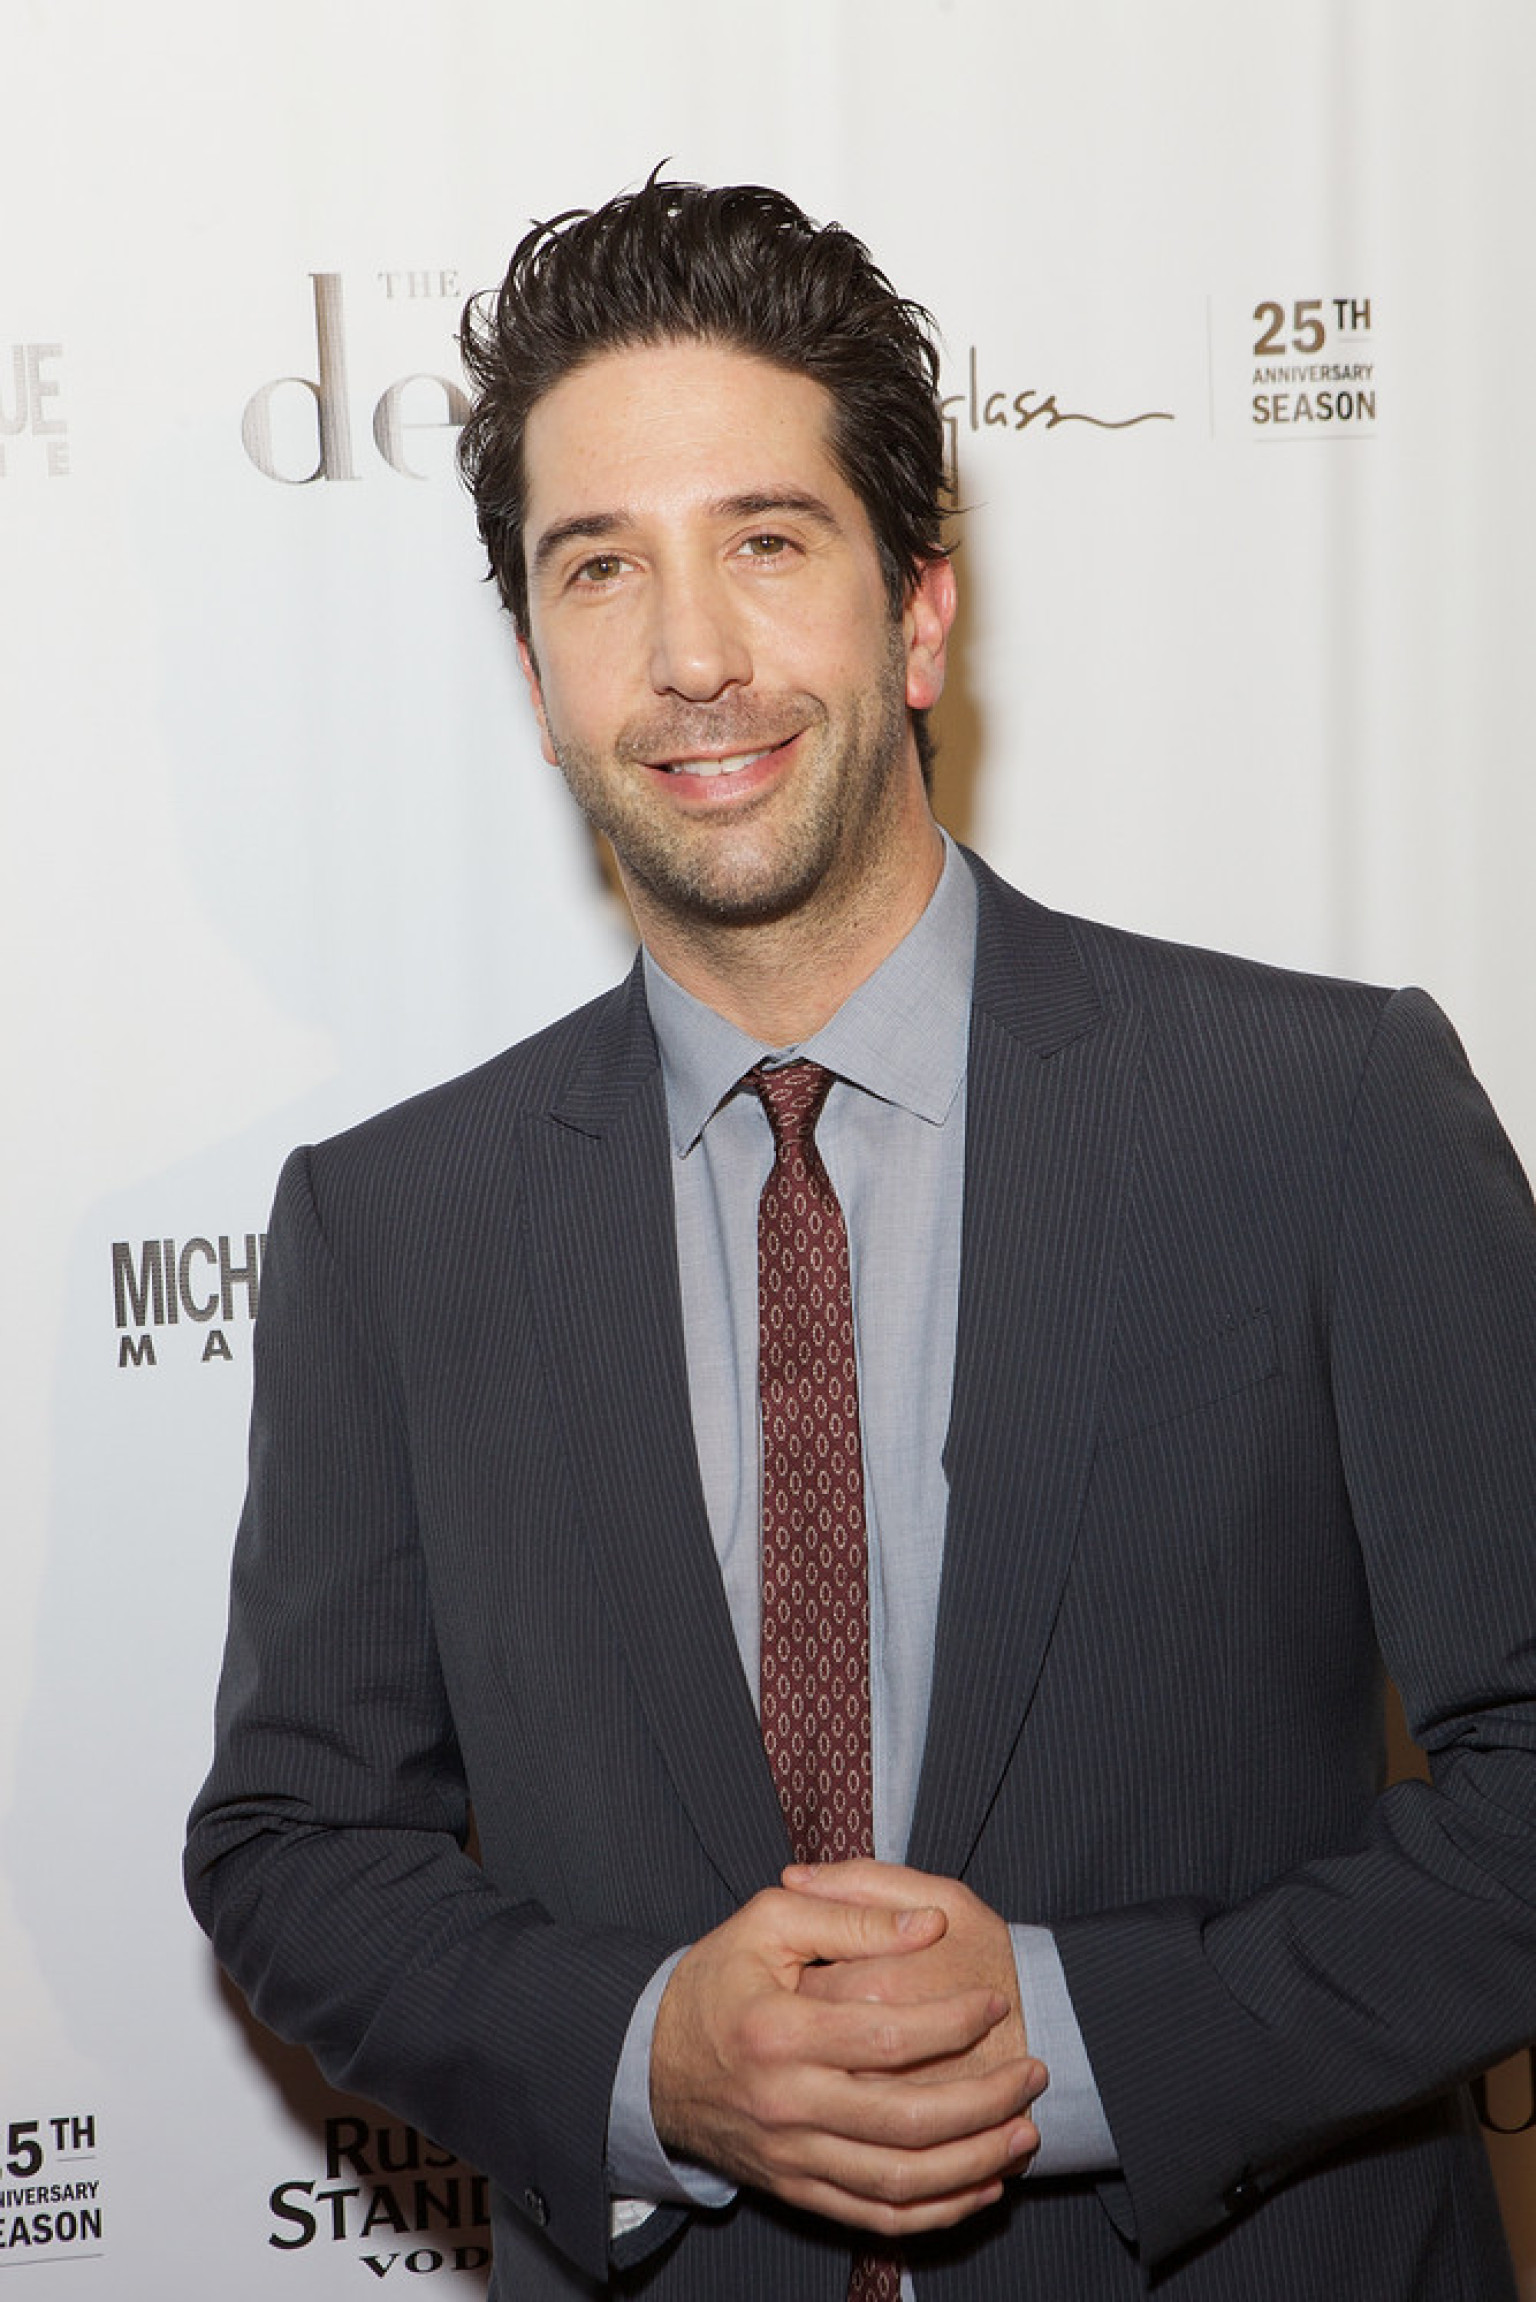 13 Reasons David Schwimmer Is Ross Geller | HuffPost